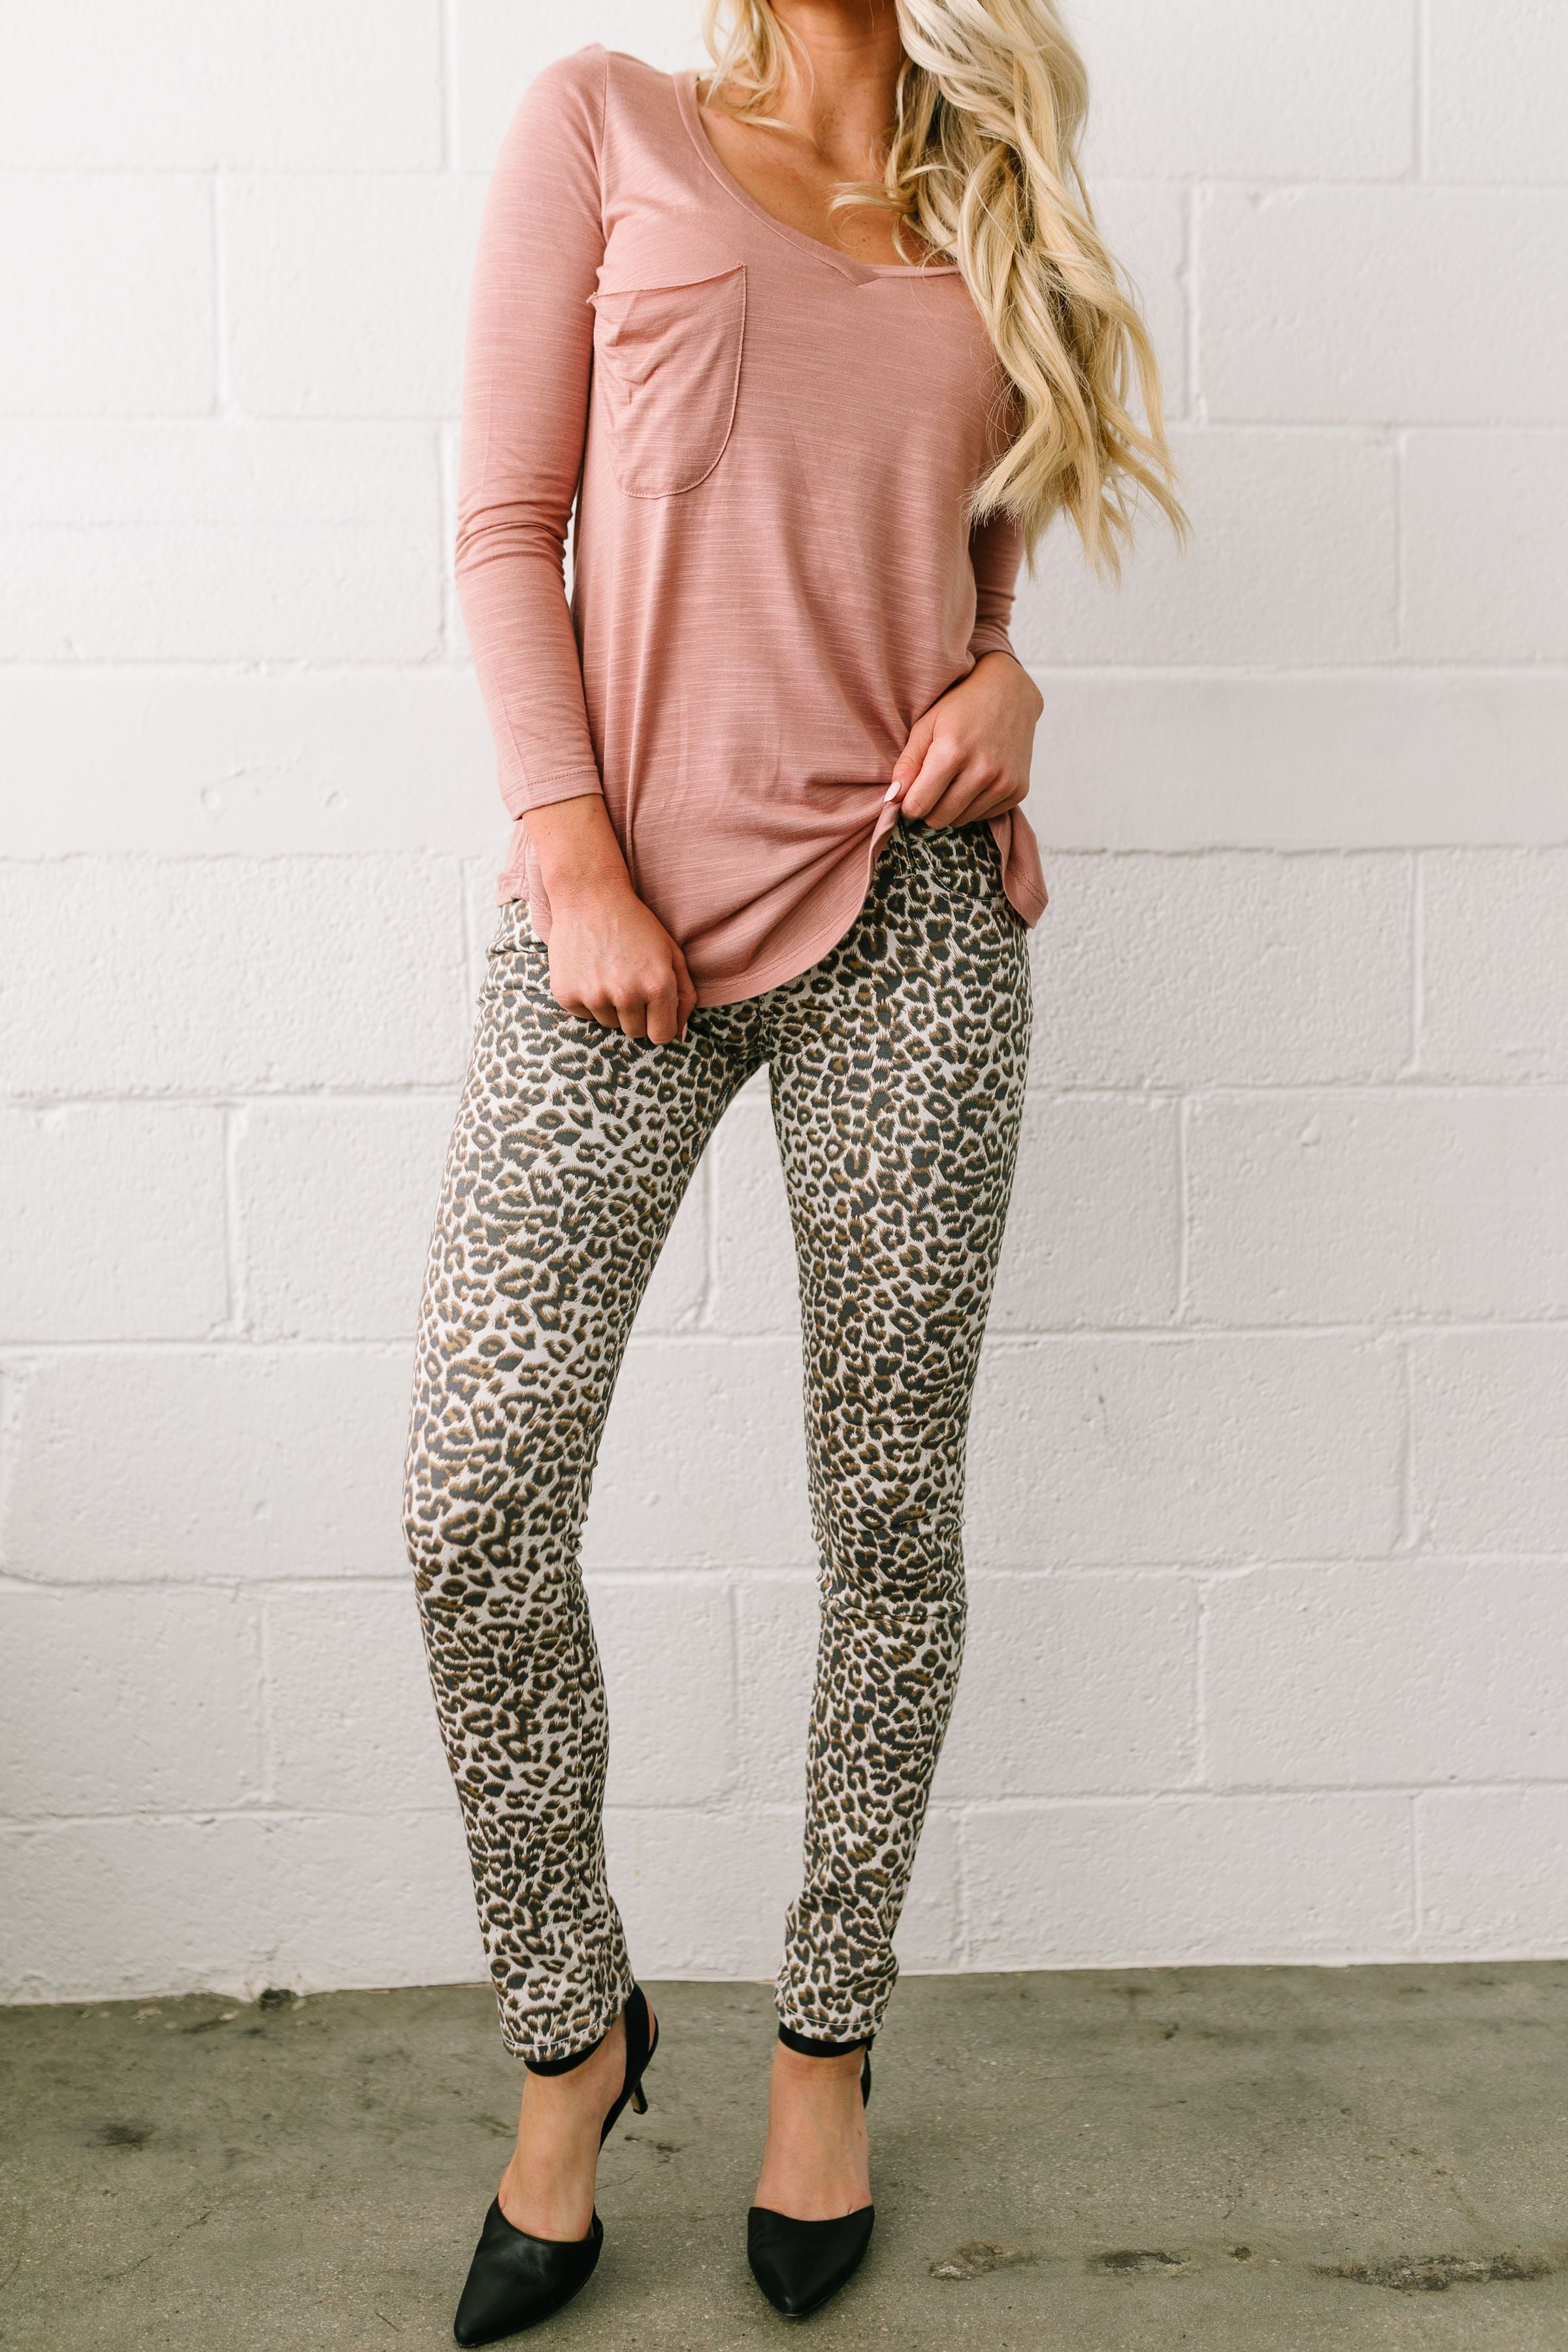 Fast And Furious Faded Leopard Print Jeans